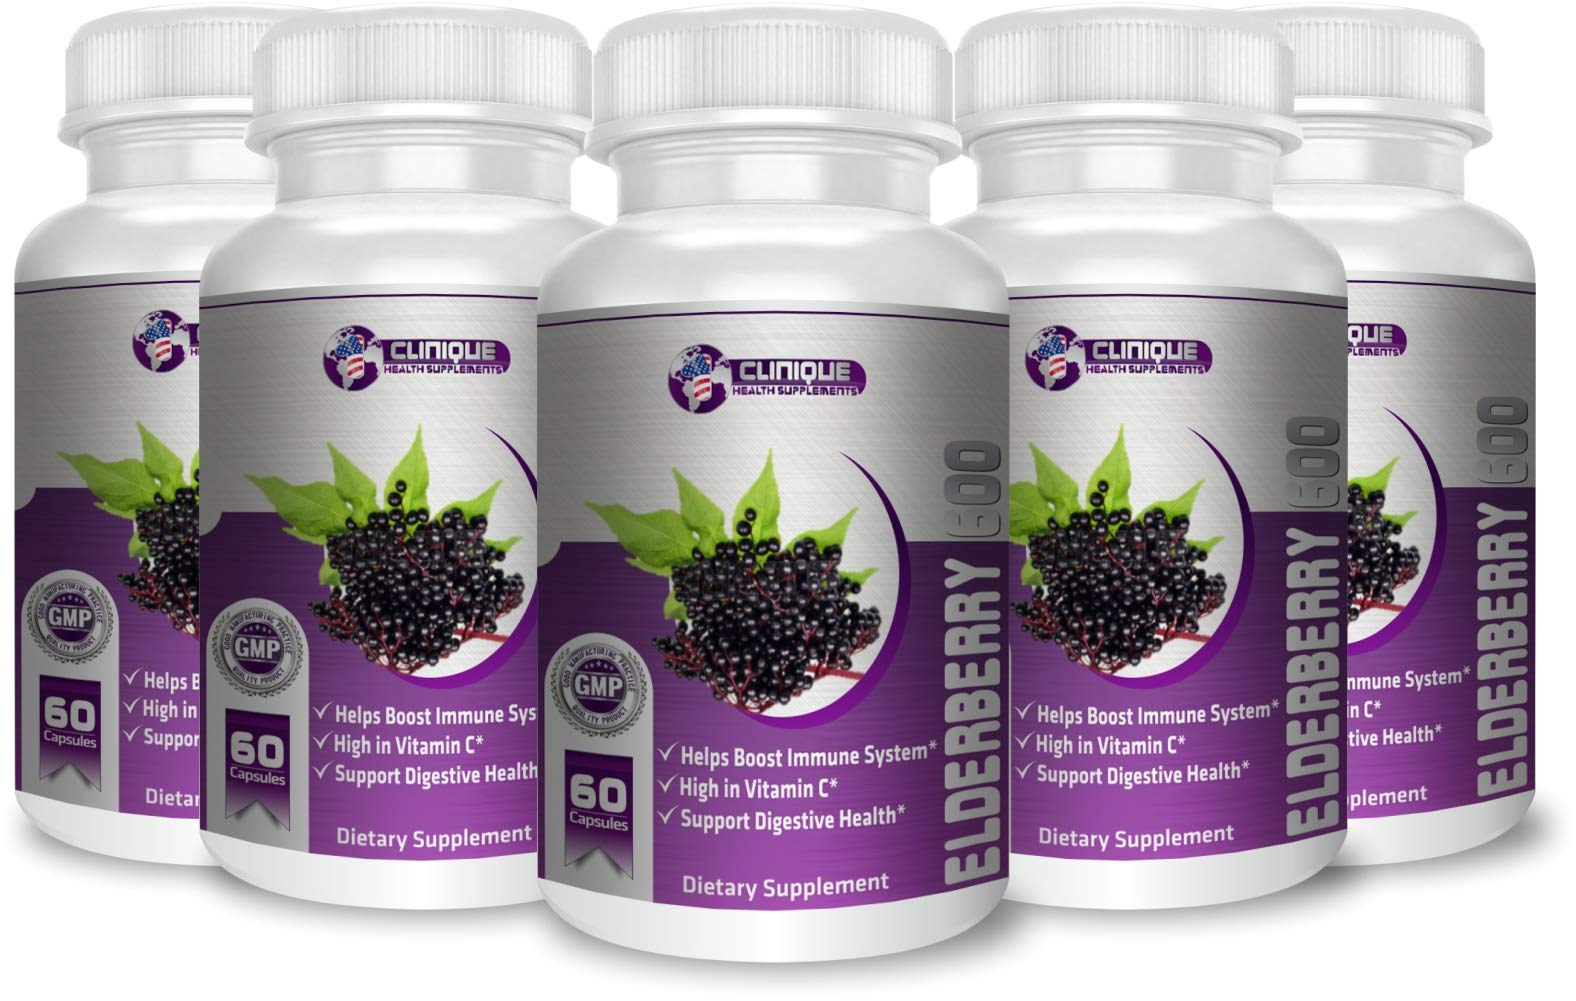 1Clinique's Elderberry   Standardized 5% Flavonoids   Elderberry Fruit Extract 5:1   High in Vitamin C   Helps Boost Immune System   Supports Digestive health   Value Pack 5 x 60 Capsule   Made In USA